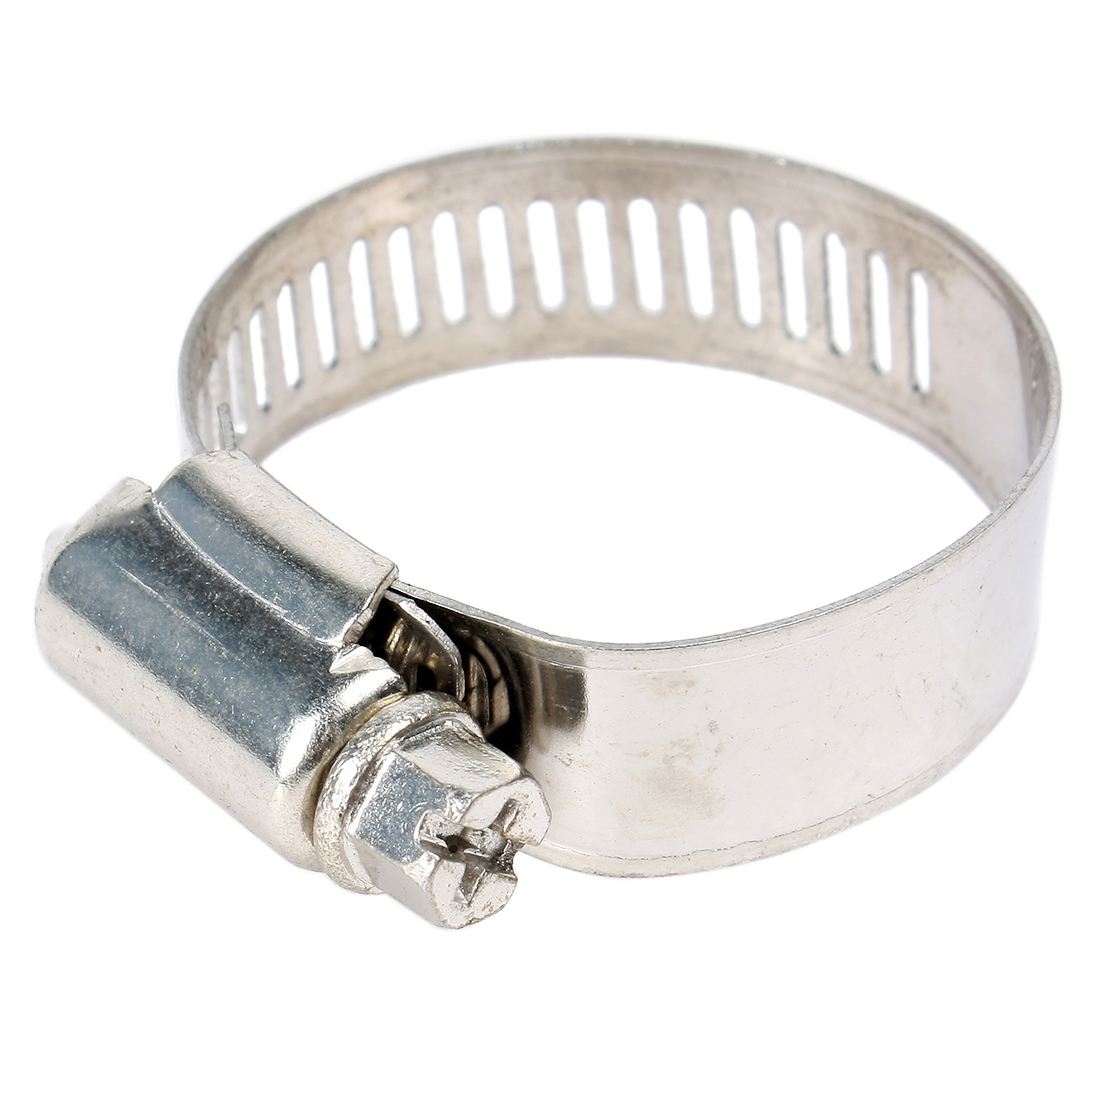 15pcs Silver Tone Stainless Steel Adjustable Worm Drive Hose Clamp Clip Hoop for 21-38mm Pipe